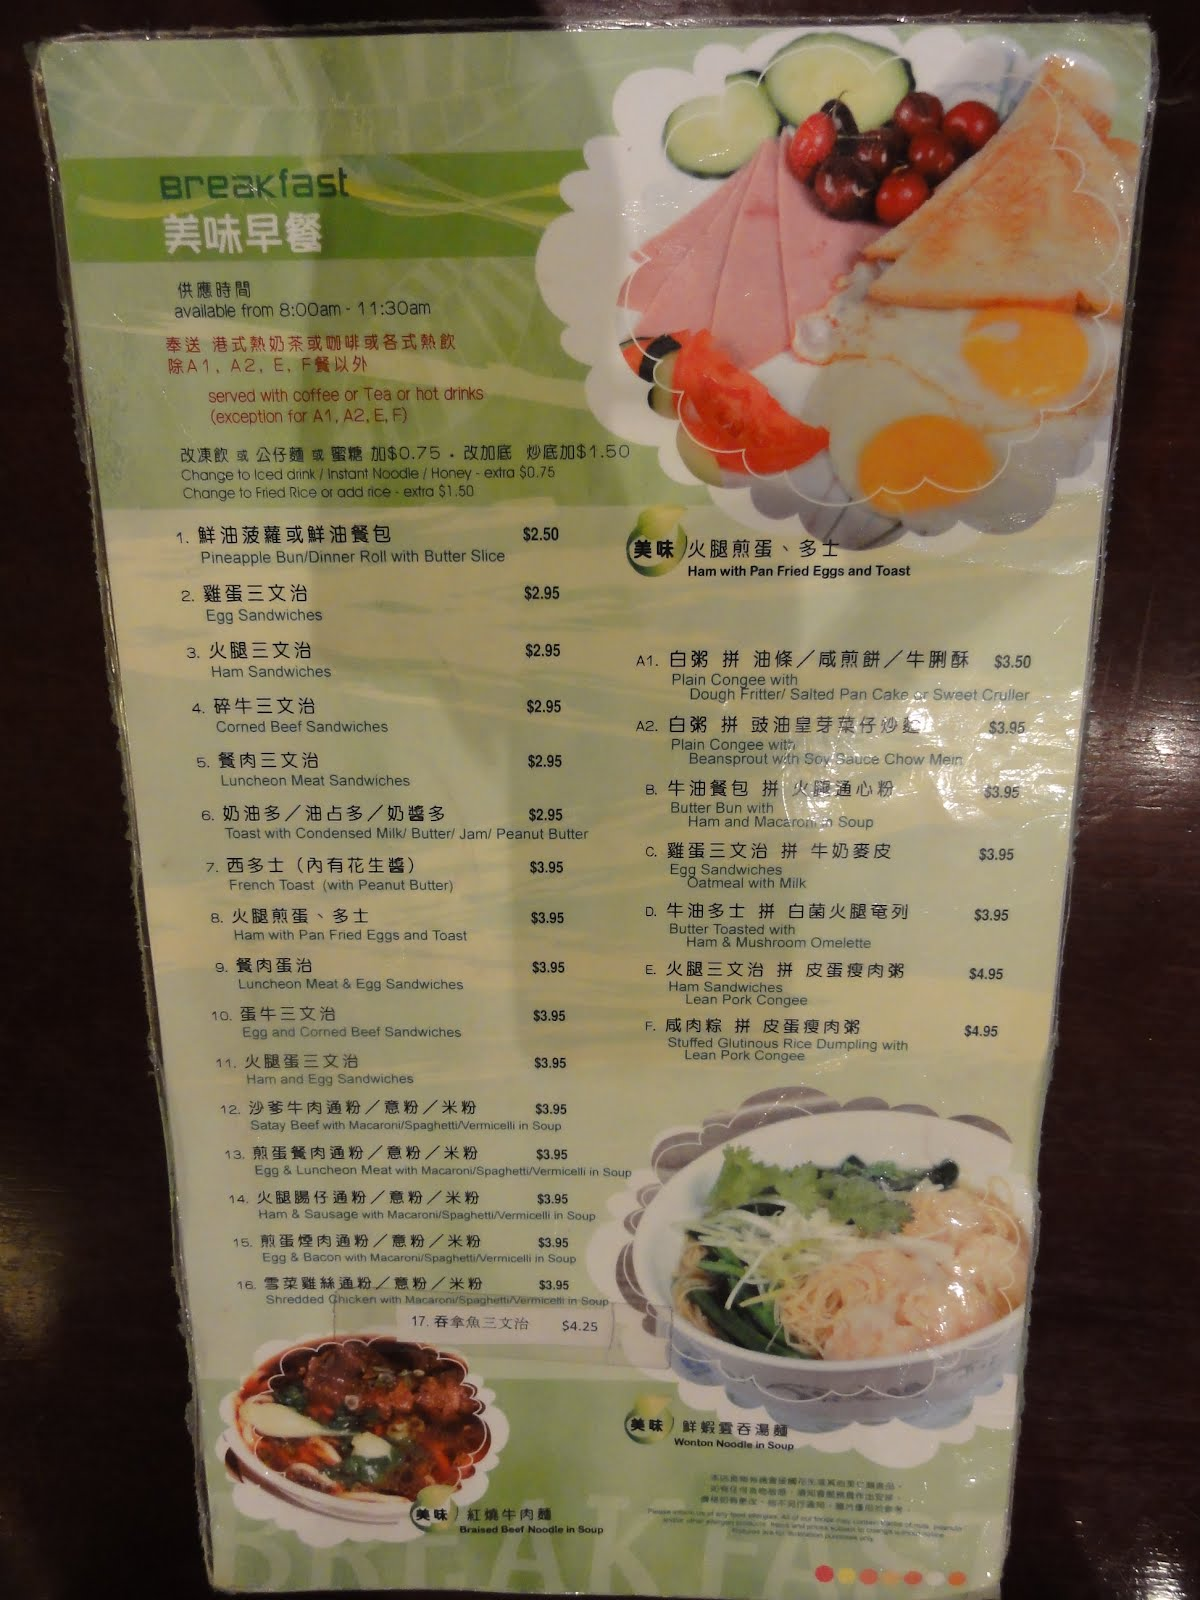 Gracie 39 S Blog Ho Garden Chinese Restaurant Review